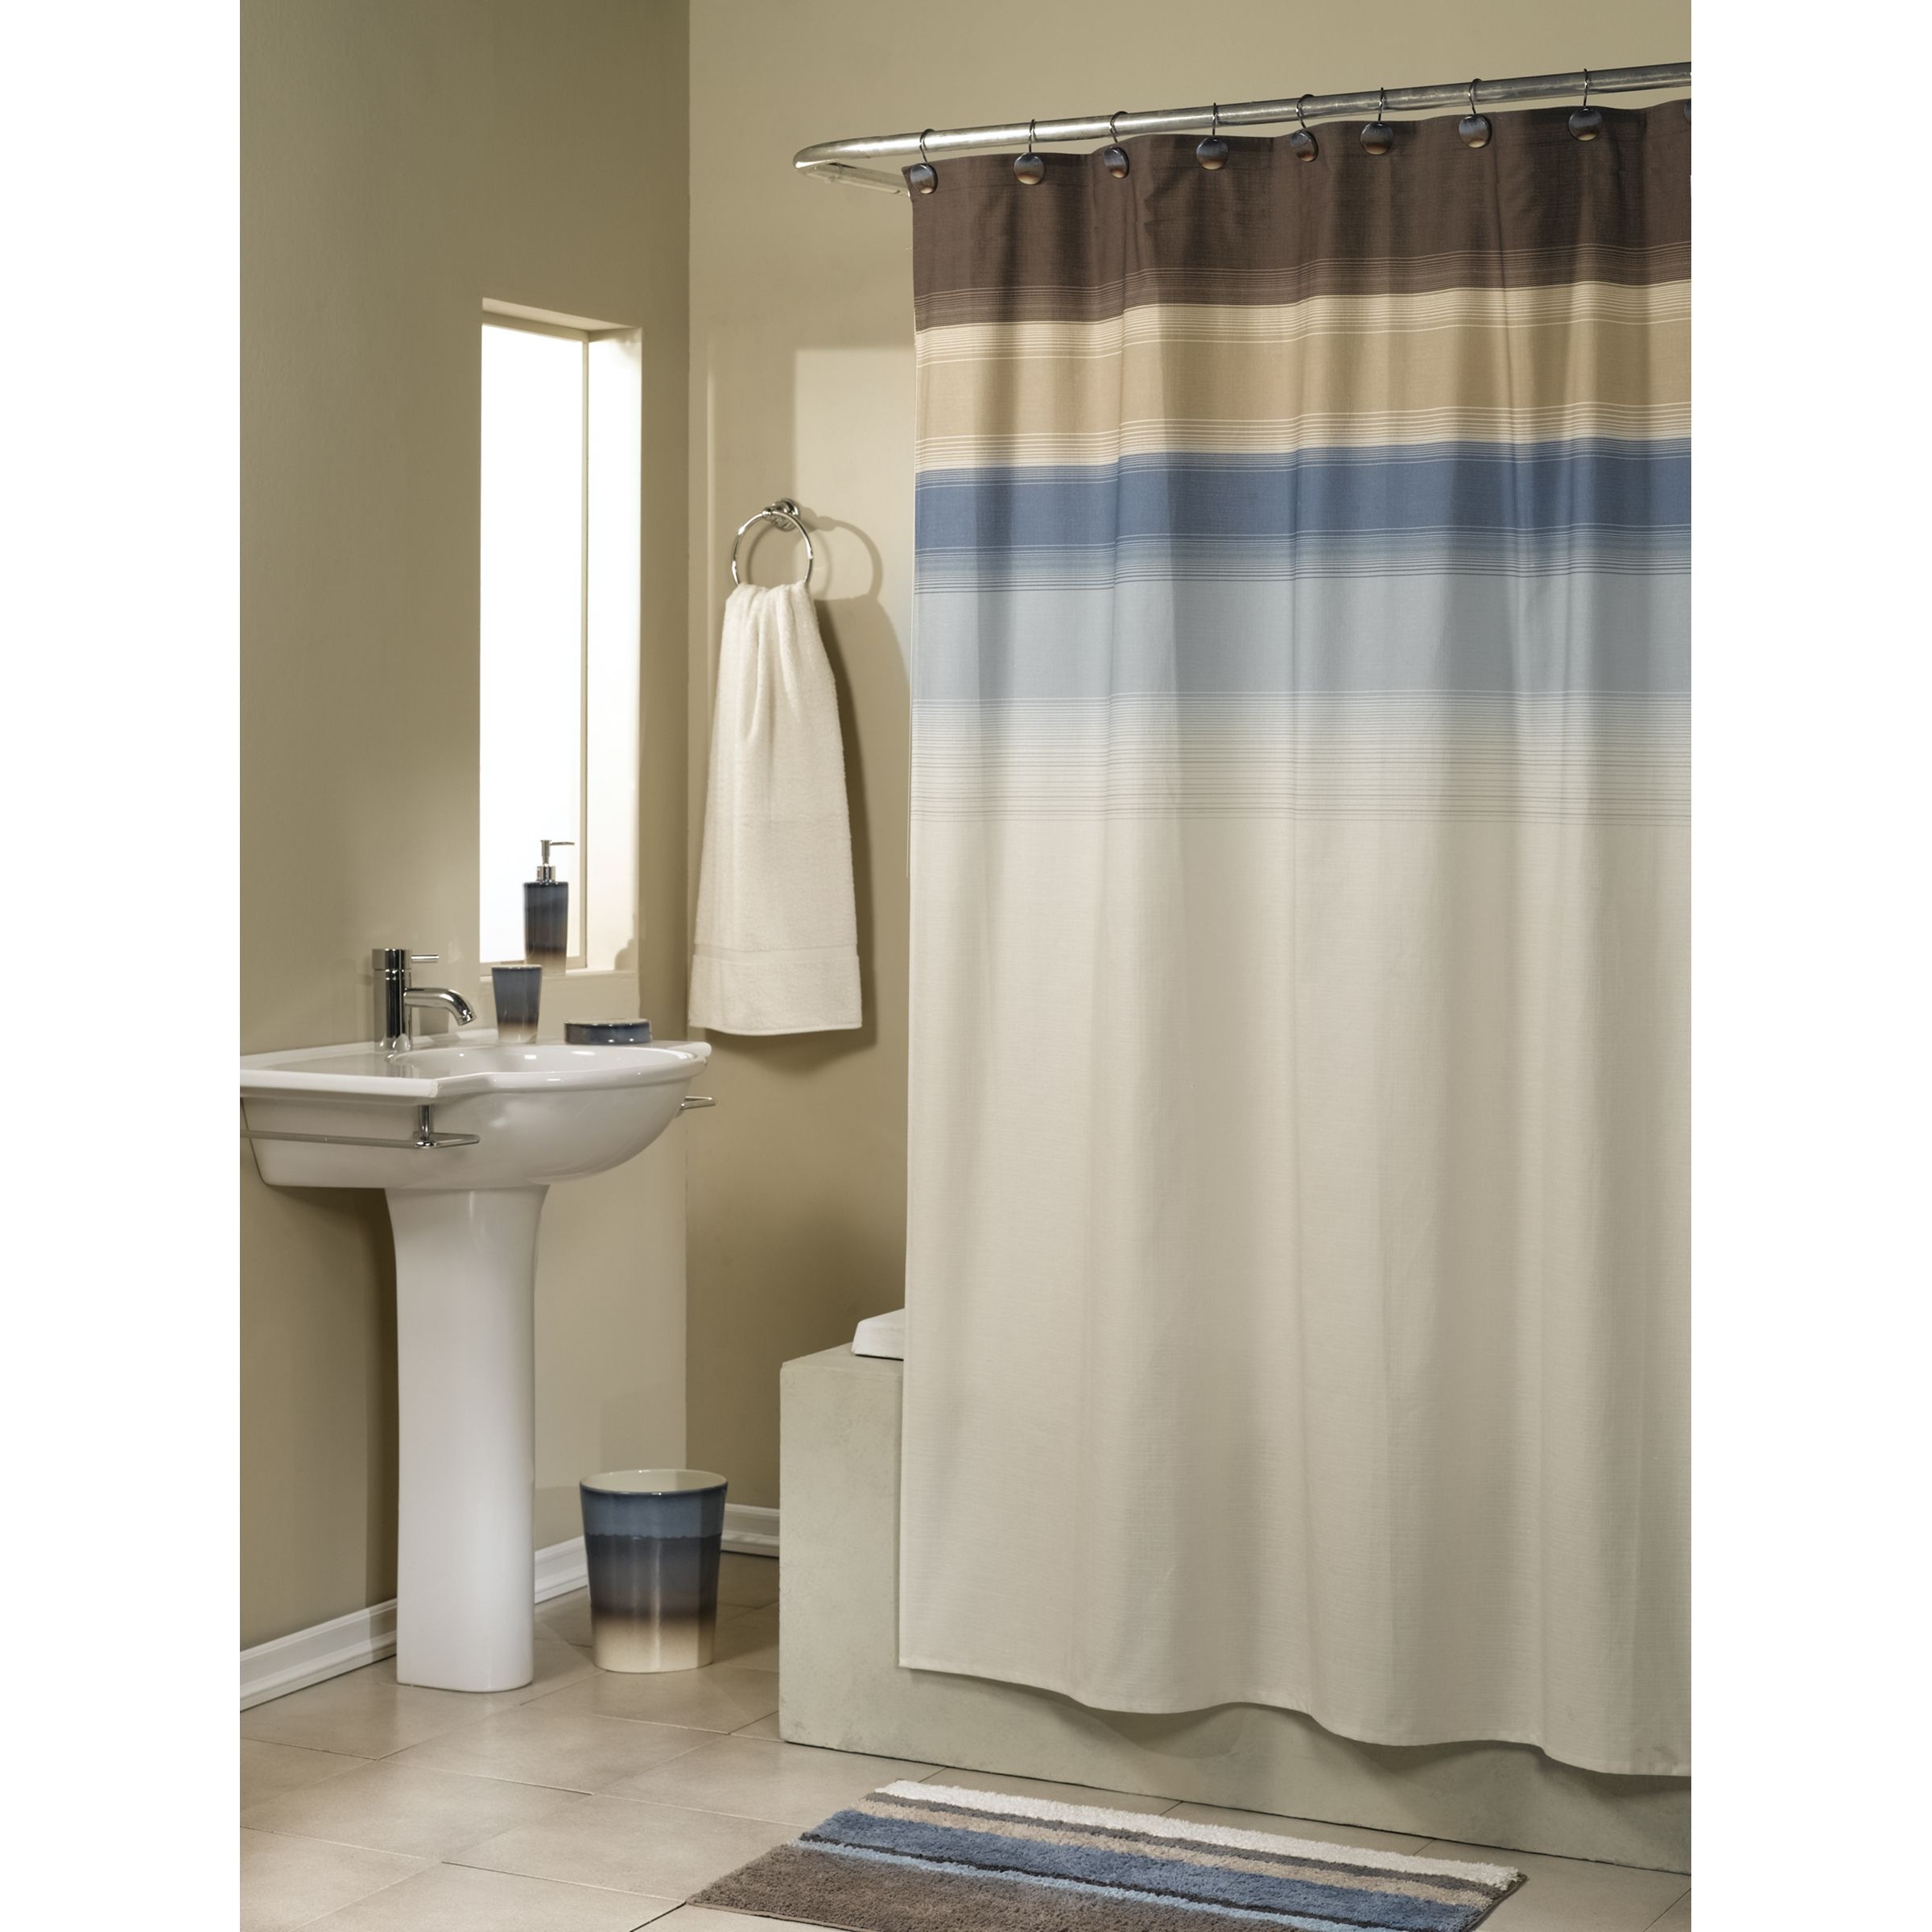 Earth Tone Curtains Ty Pennington Style Shower Curtain Tango Fabric